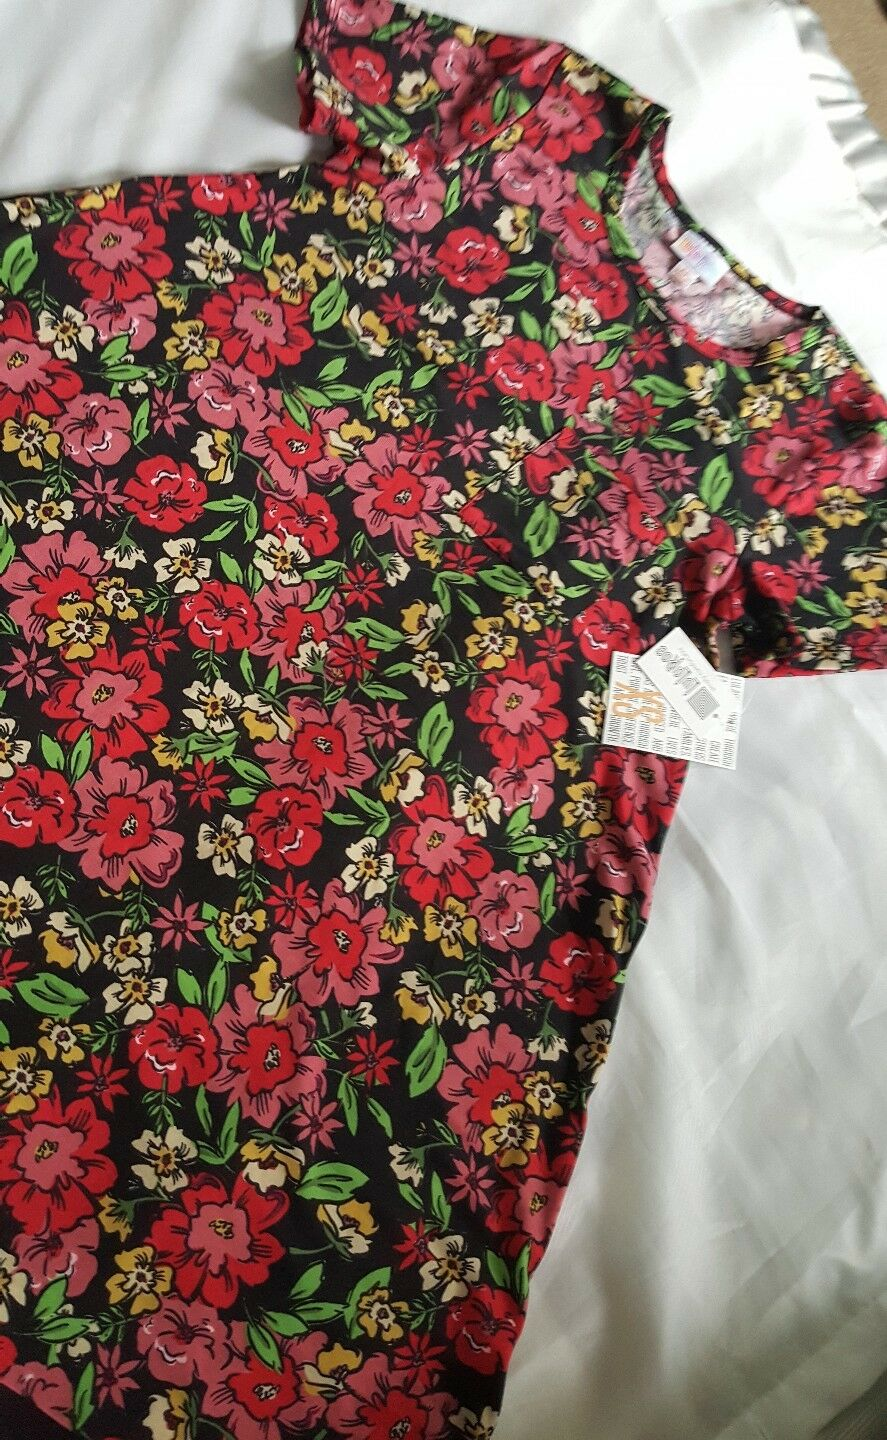 NWT LuLaRoe XS  Carly Pink Red Floral Dipped Dipped Dipped Polka Dots  X Small Unicorn   15893f